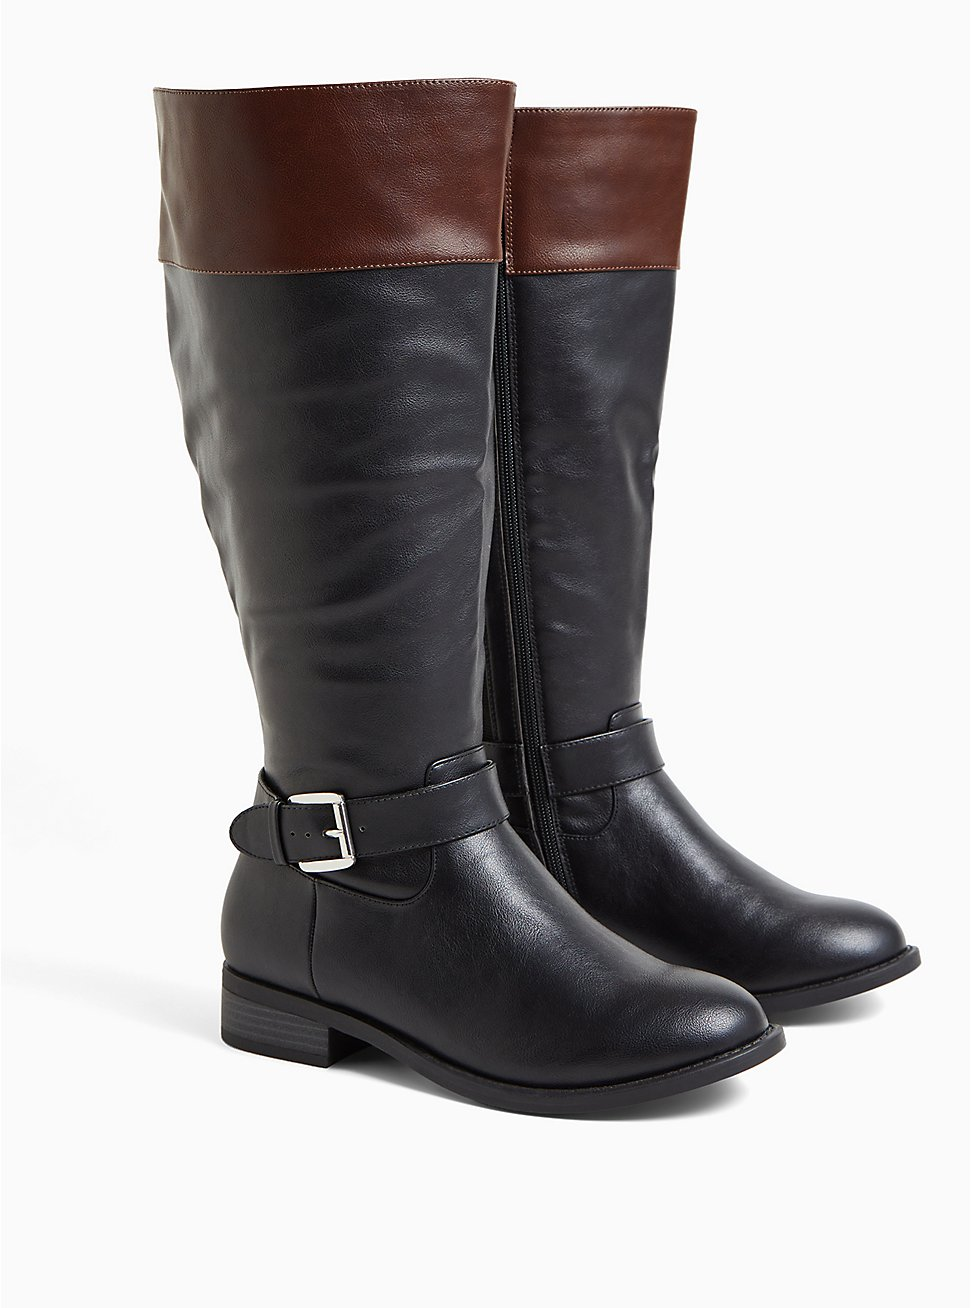 Black Faux Leather Two Tone Buckle Knee-High Boot (WW), BLACK, hi-res